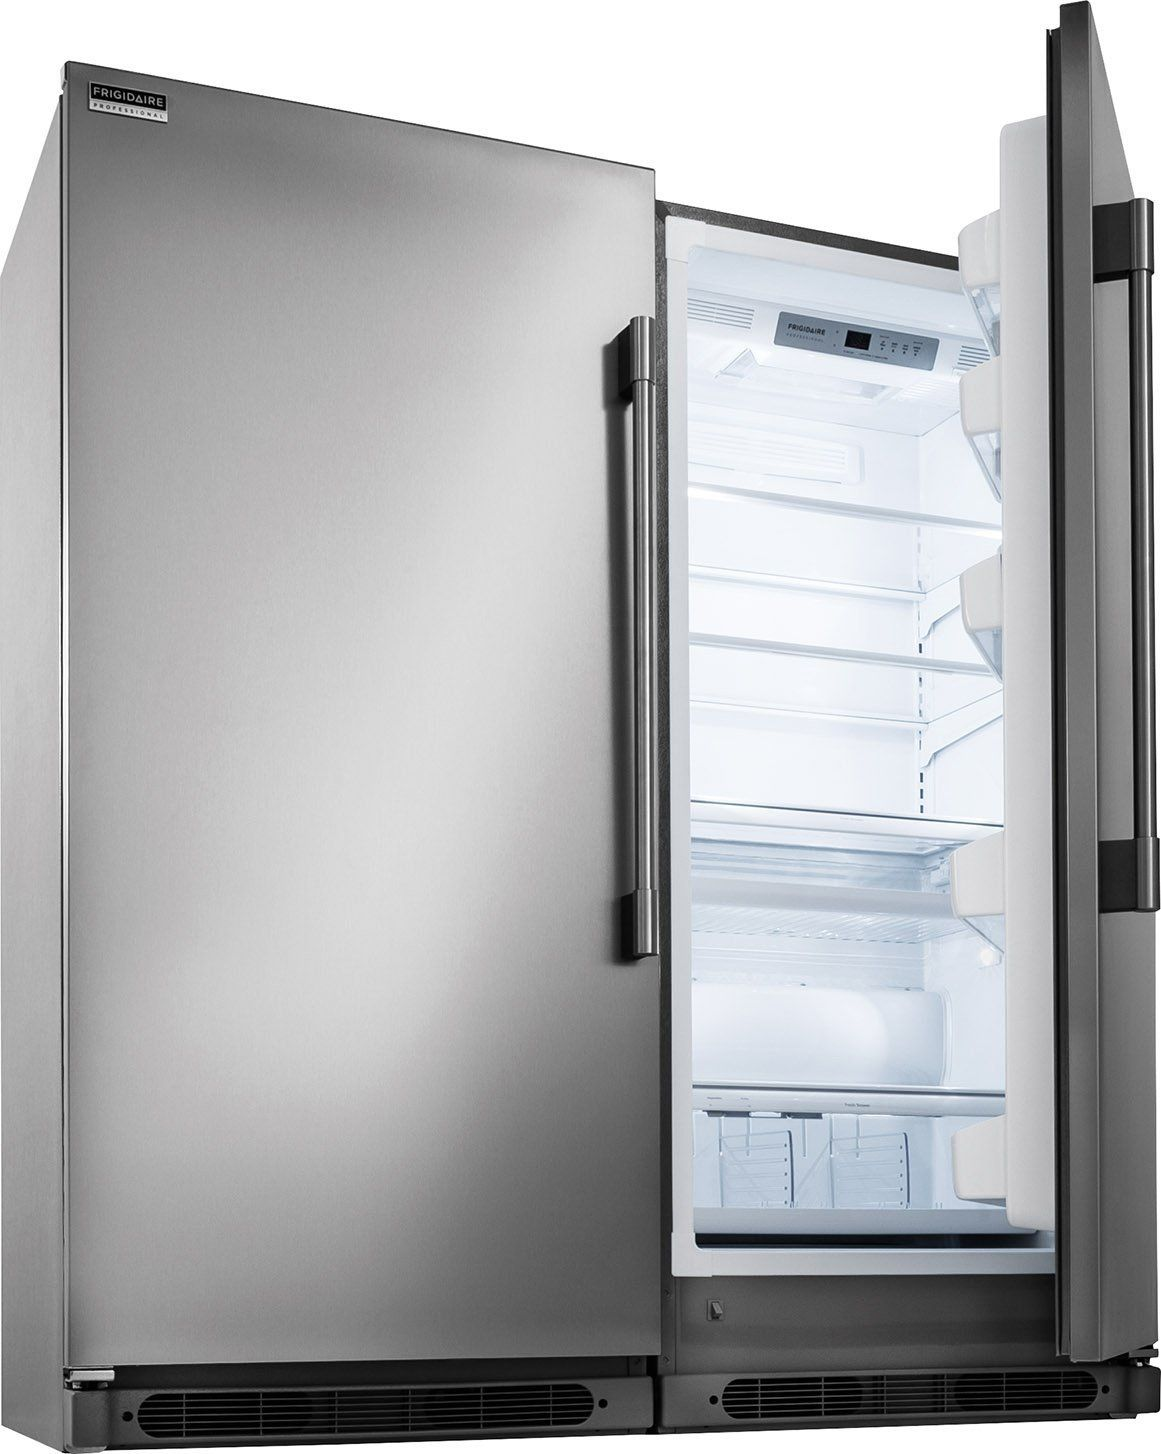 Frigidaire Professional Series Built In All Refrigerator Freezer Combo With Easy Care Stainless